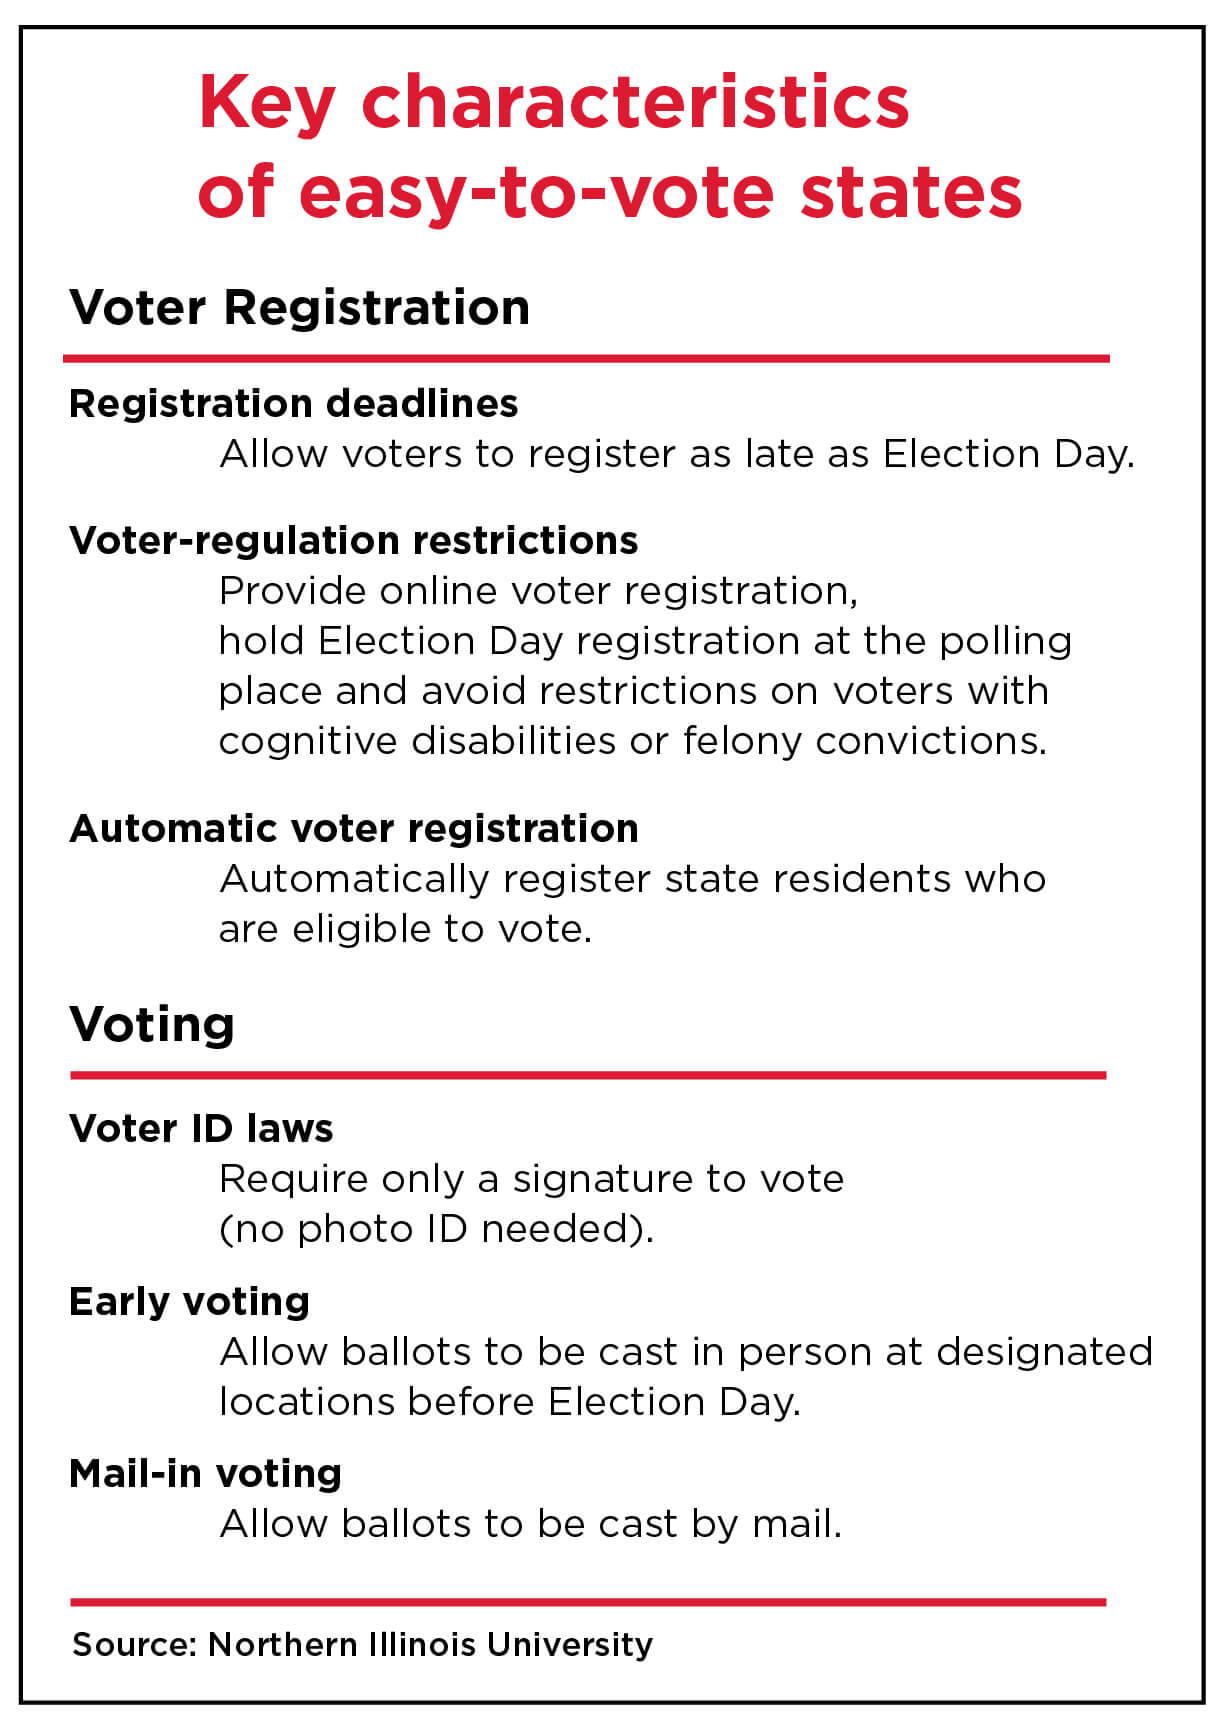 do most countries require an id to vote